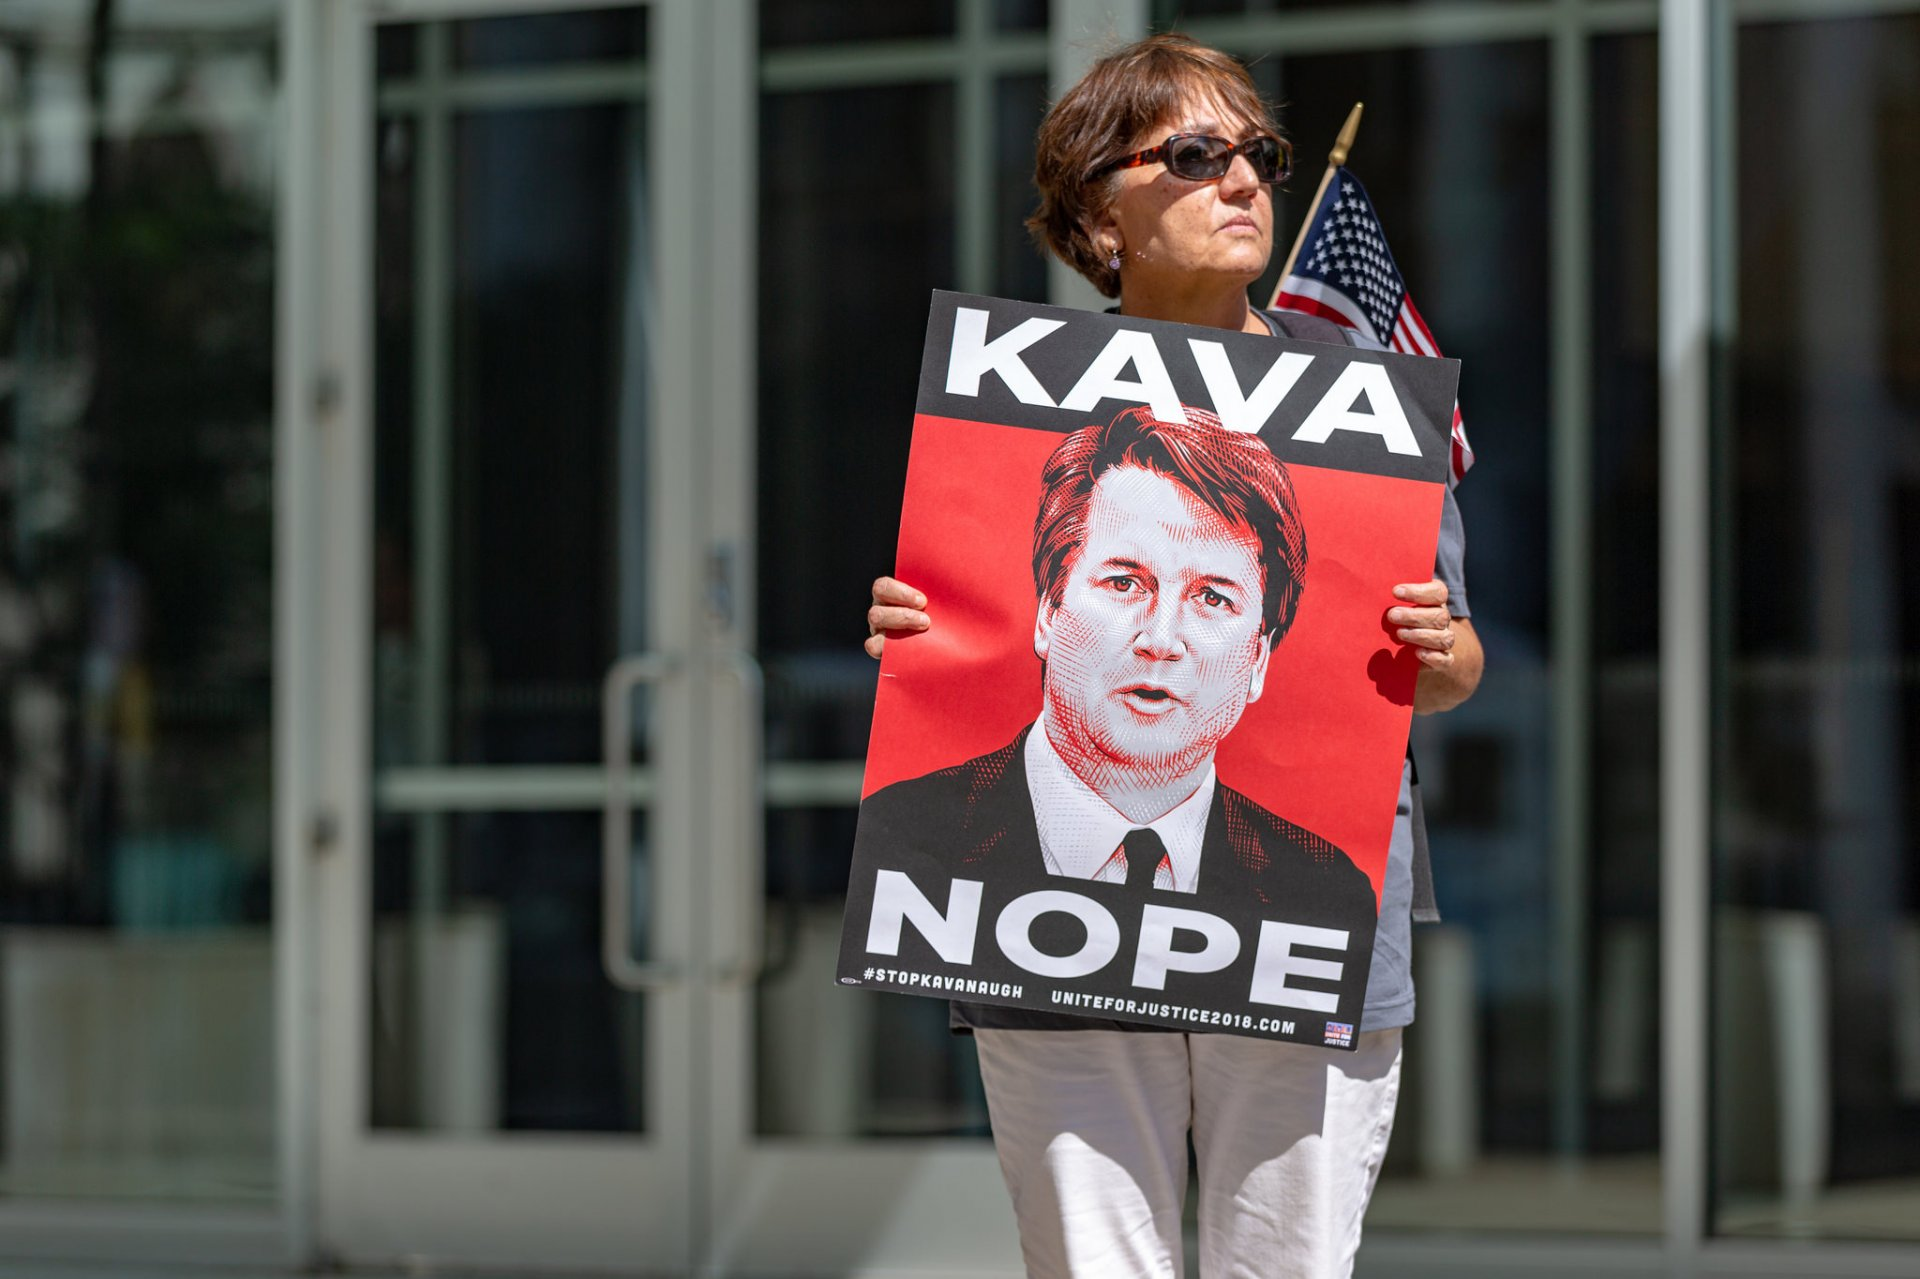 A protester against the confirmation of U.S. Supreme Court nominee Brett Kavanaugh outside the Warren E. Burger Federal Building in St. Paul, Minnesota. | Photo courtesy of Lorie Shaull